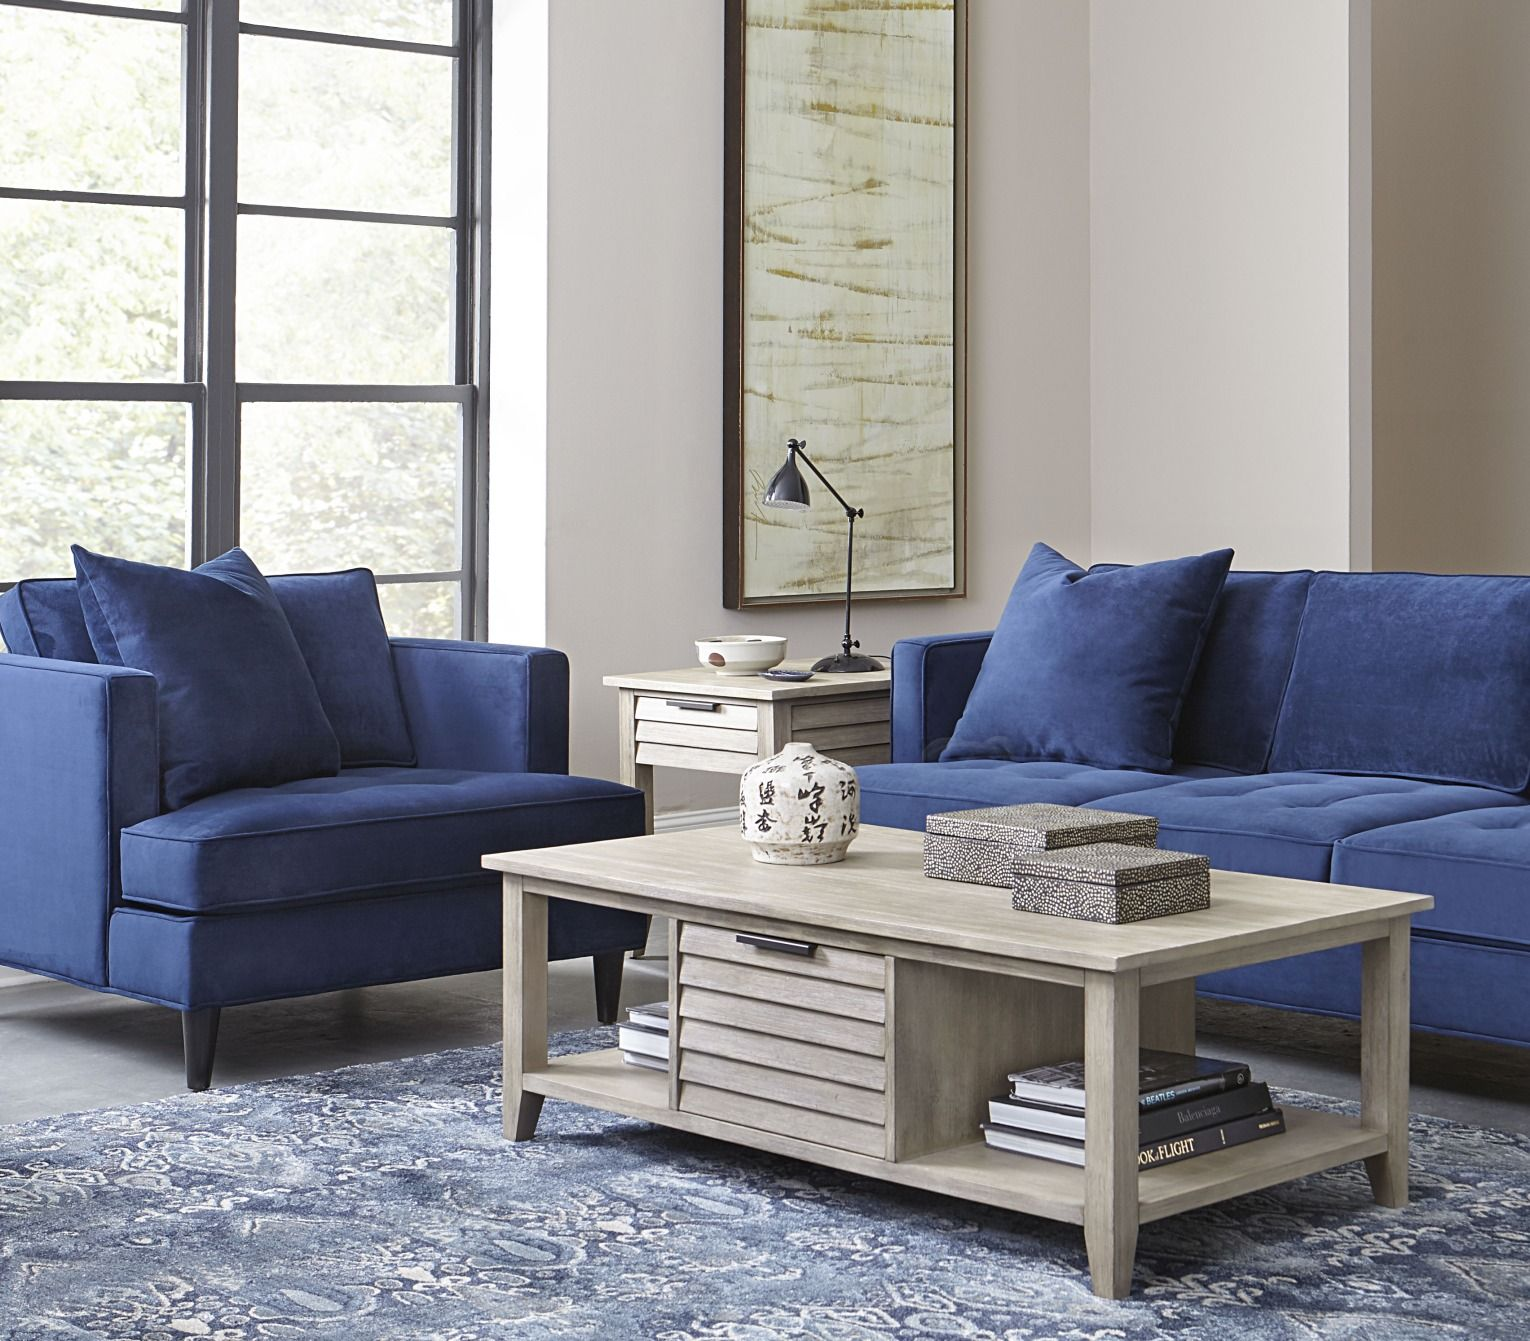 Macys Com Furniture: Super Smooth Velvet Upholstery In A Bold Ink-tone Can Make